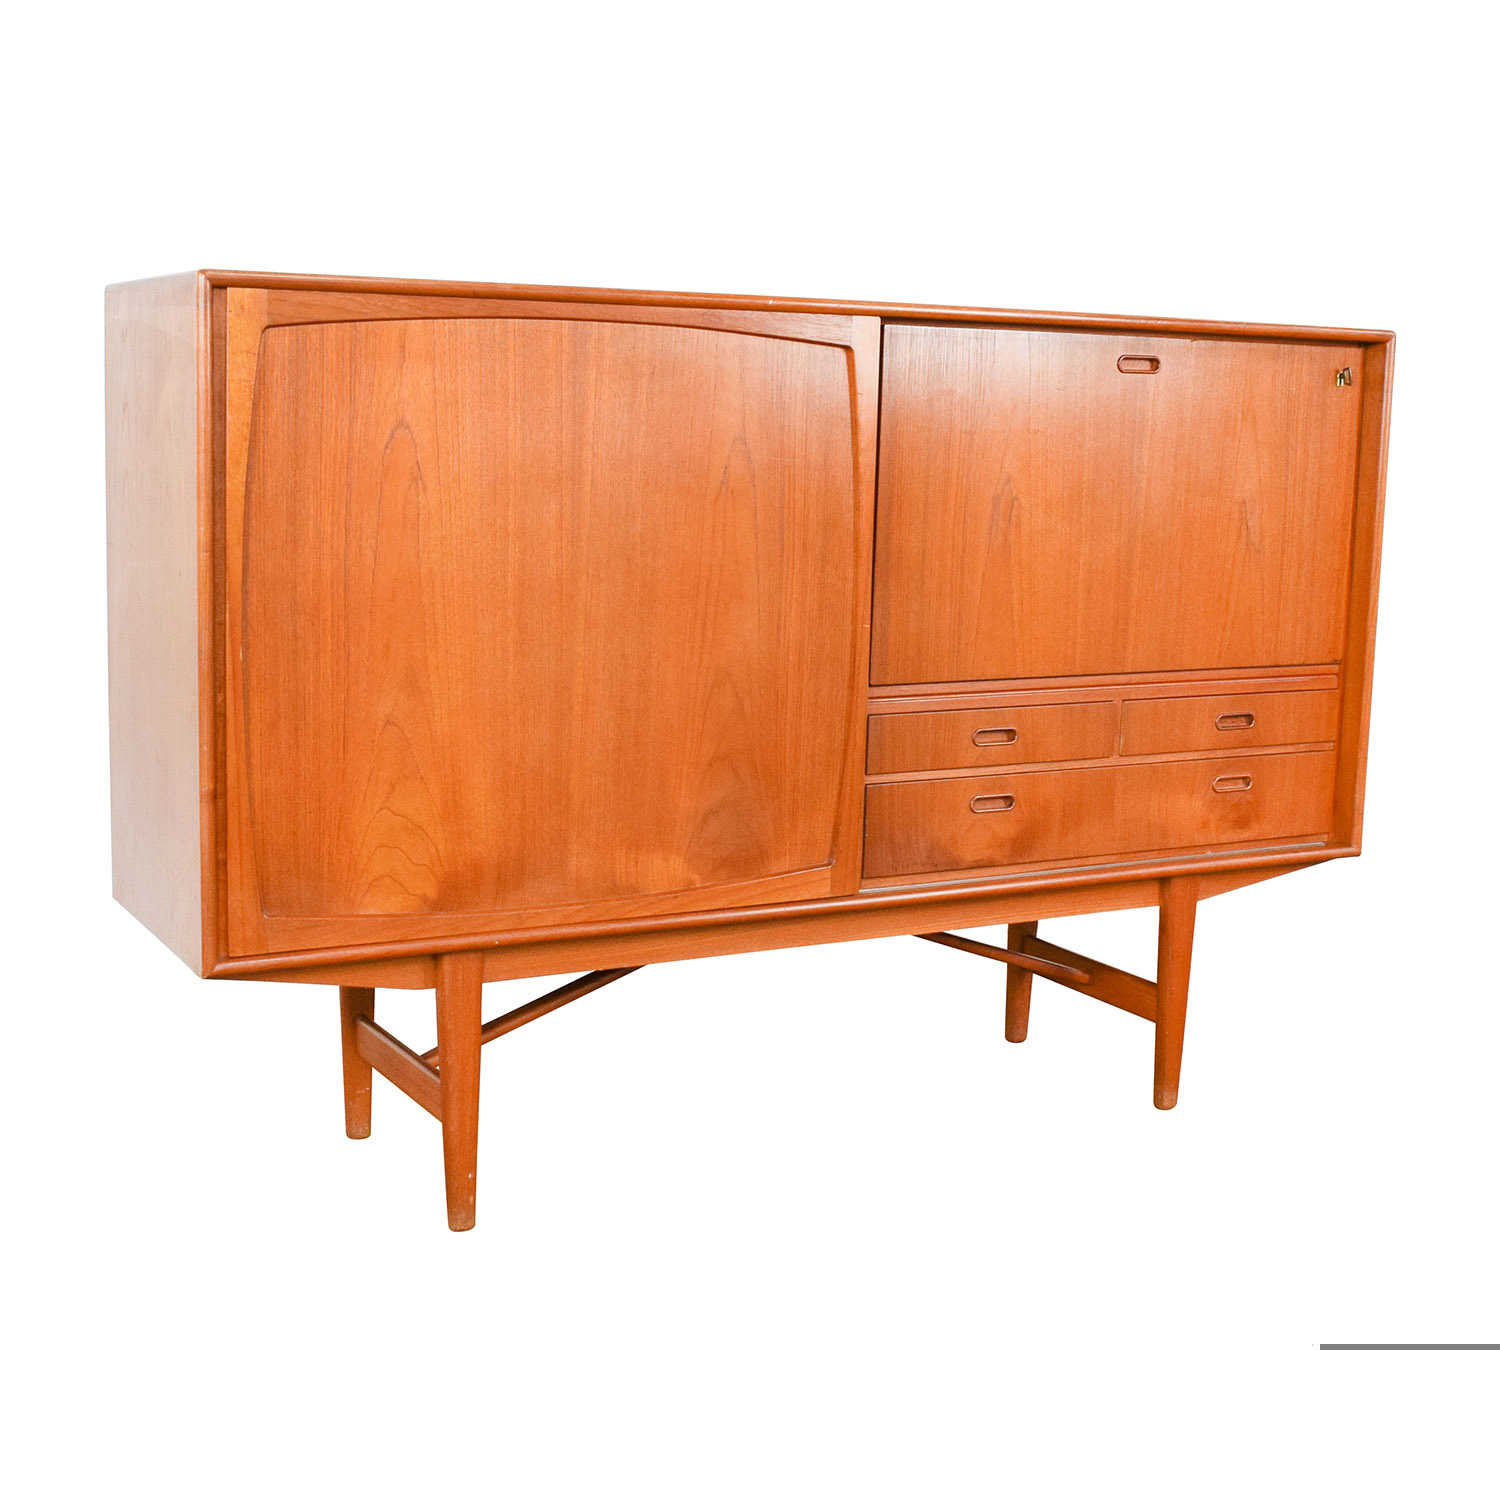 43 Off Teak Danish 1950 39 S Custom Sideboard With Etched Glass Bar Interior Storage